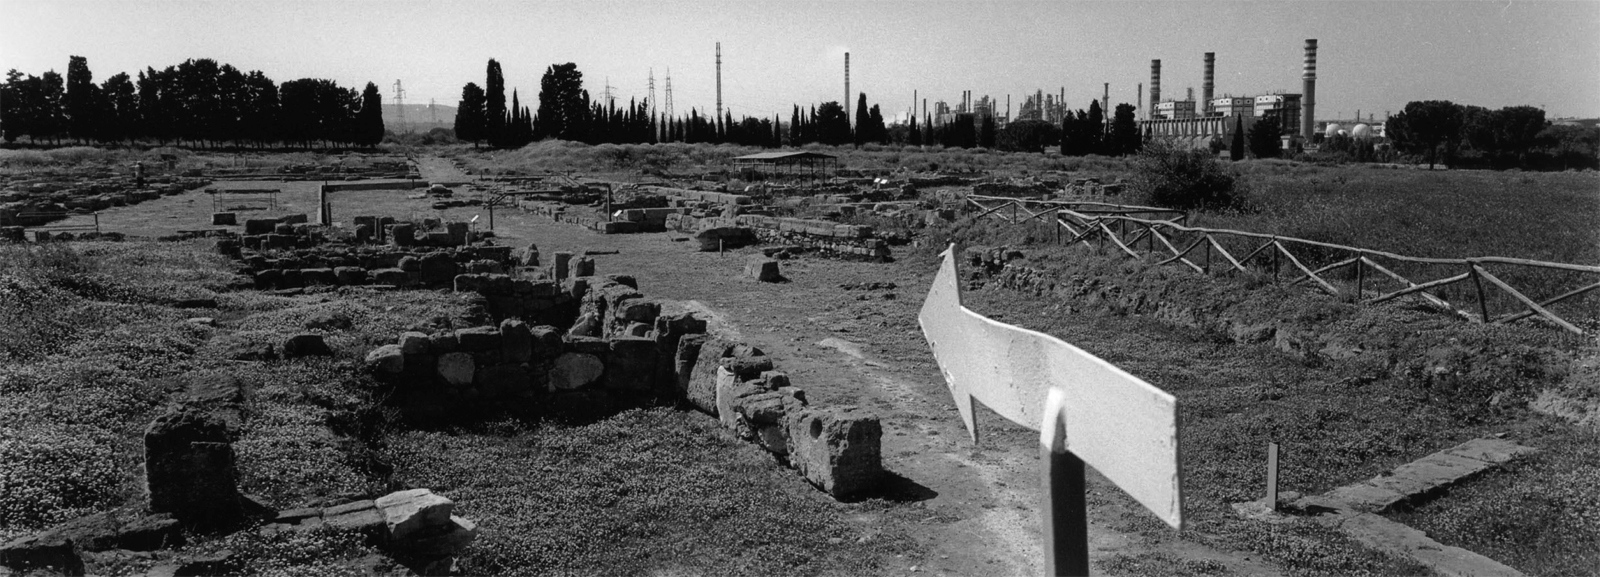 Art and Documentary Photography - Loading Archeologia_in_Sicilia___Fabio_Sgroi_041_.jpg